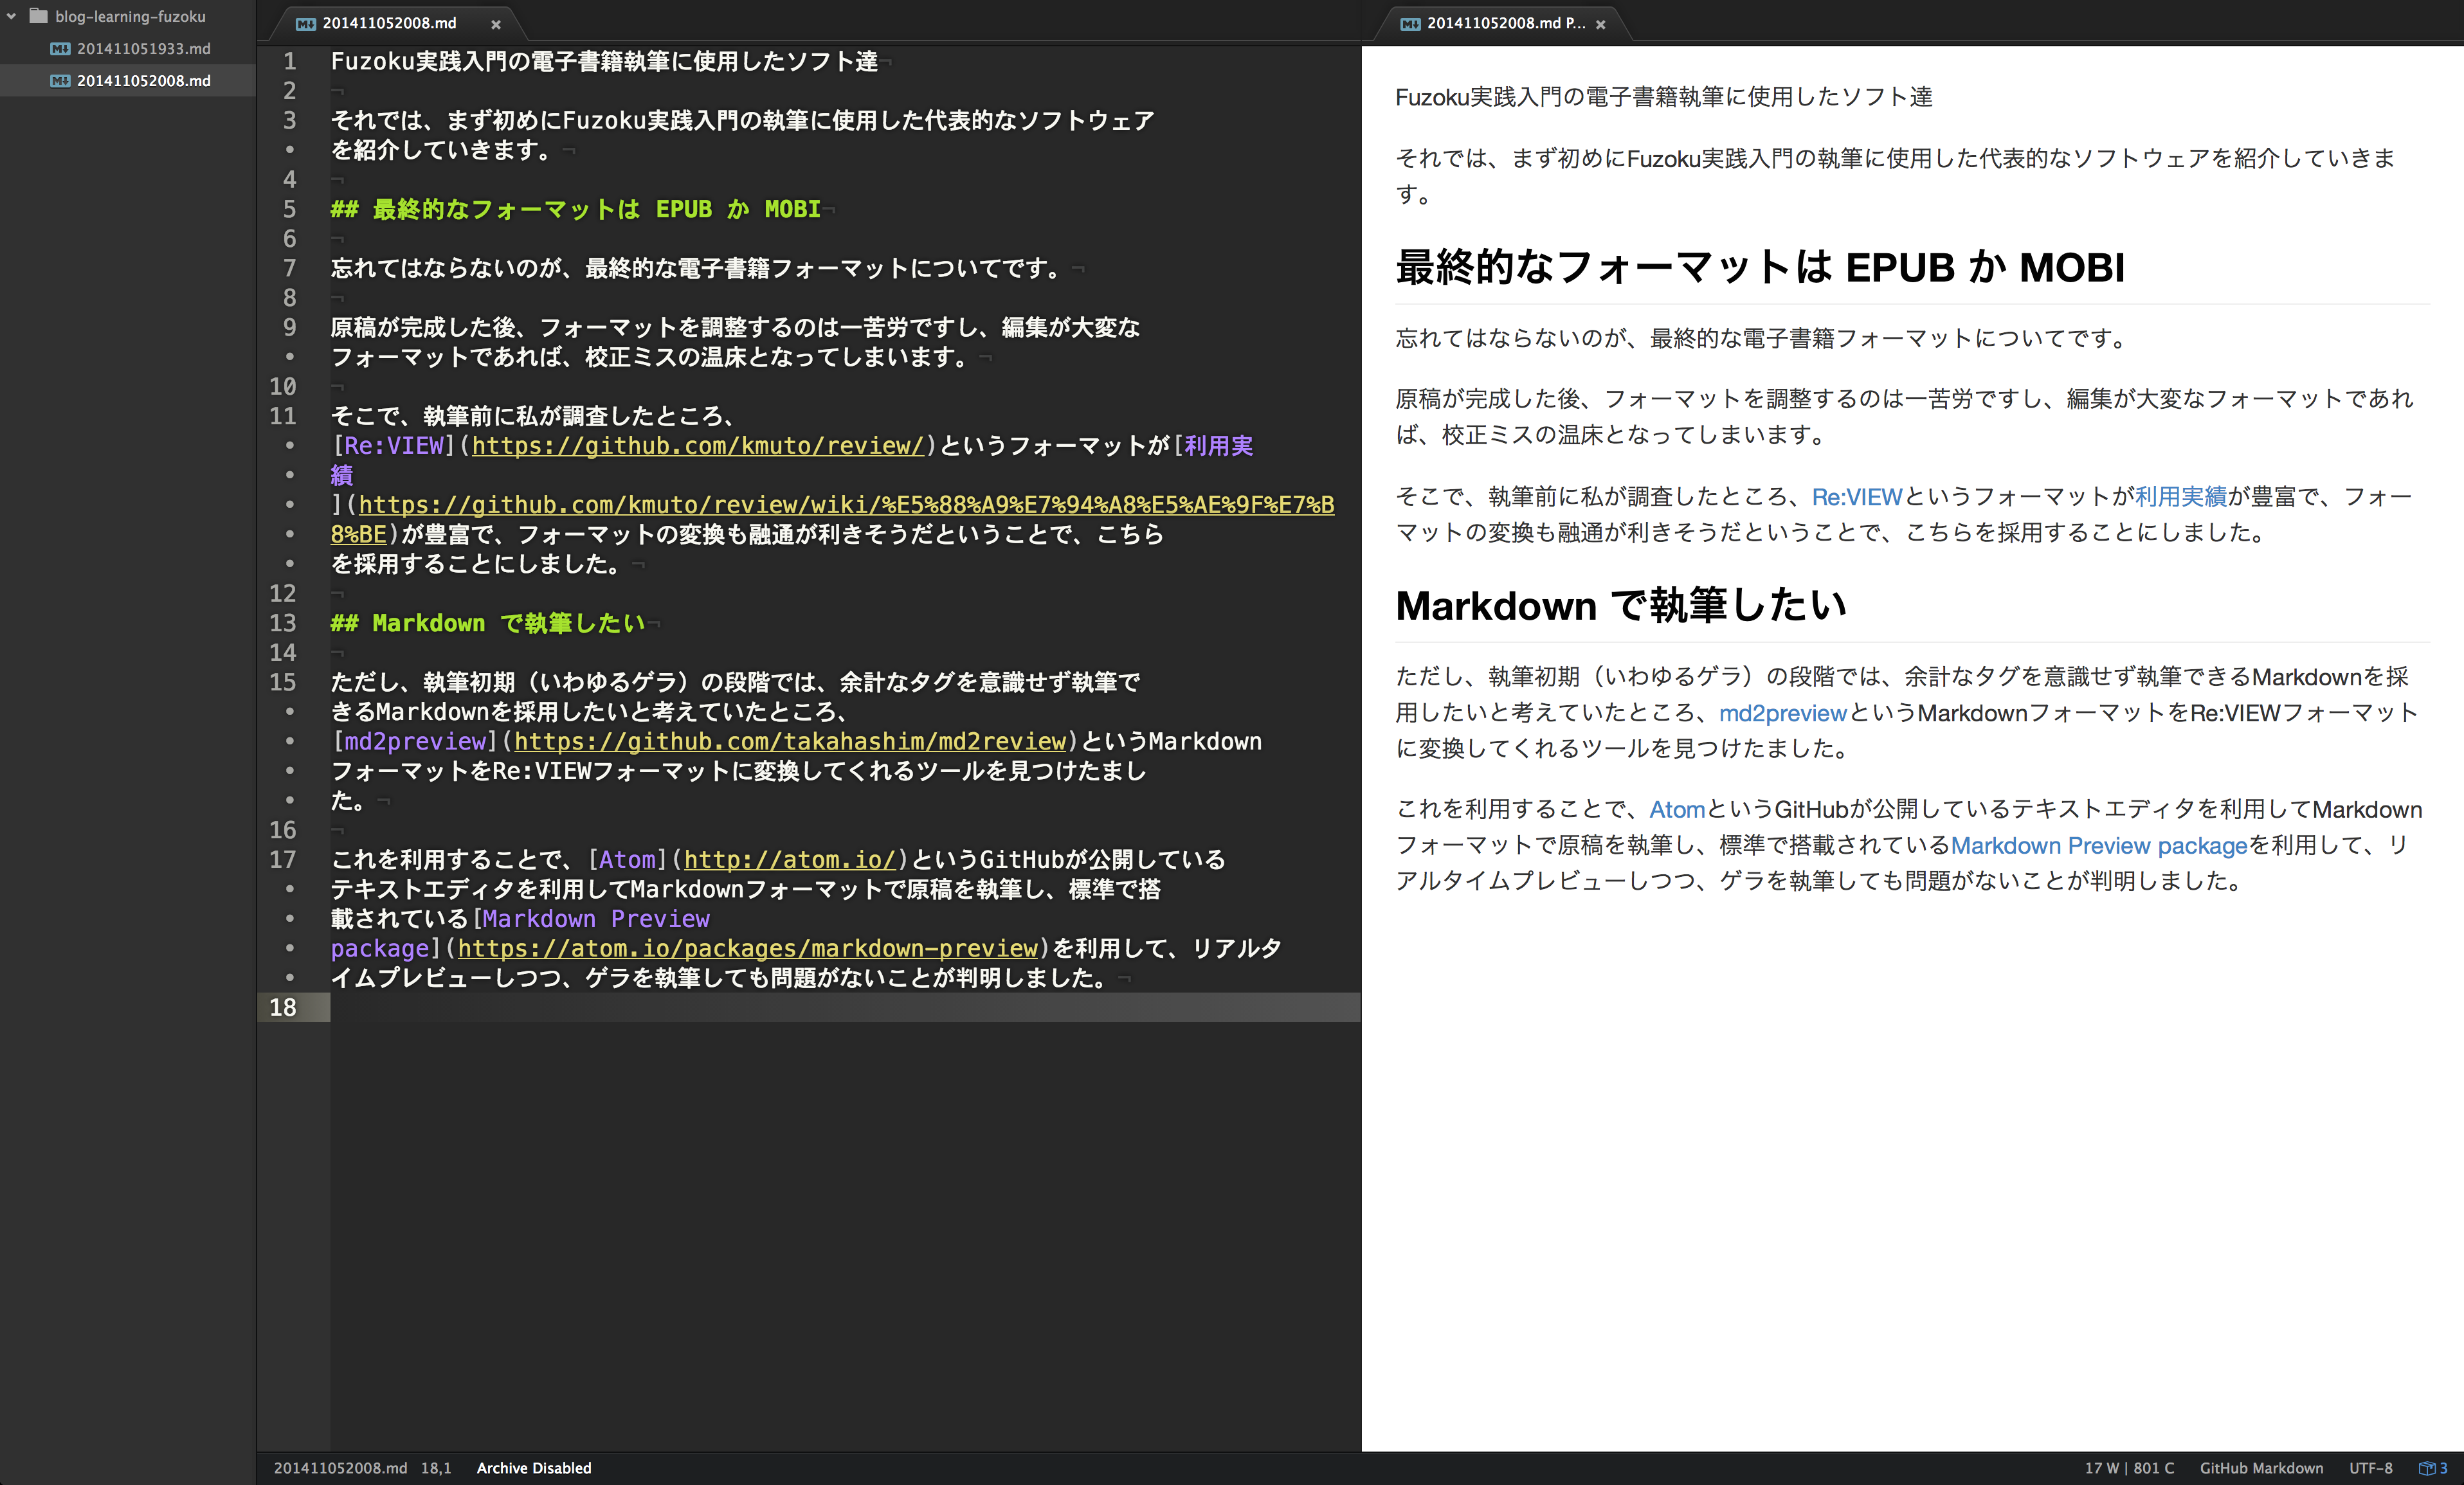 Markdown Preview package